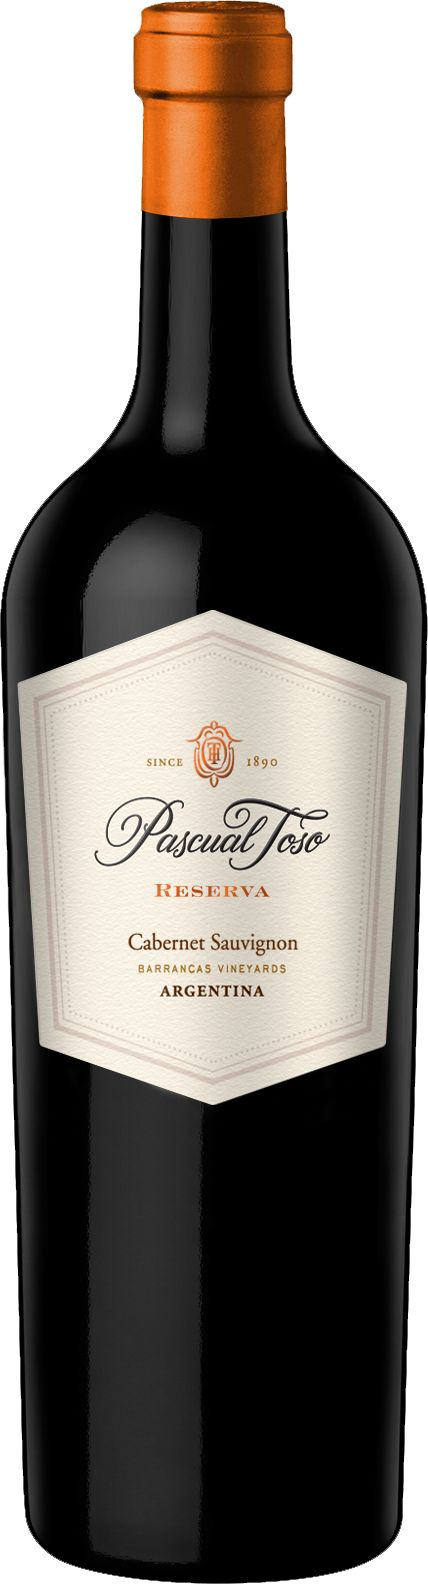 New Packaging! Pascual Toso Cabernet Sauvignon Reserva